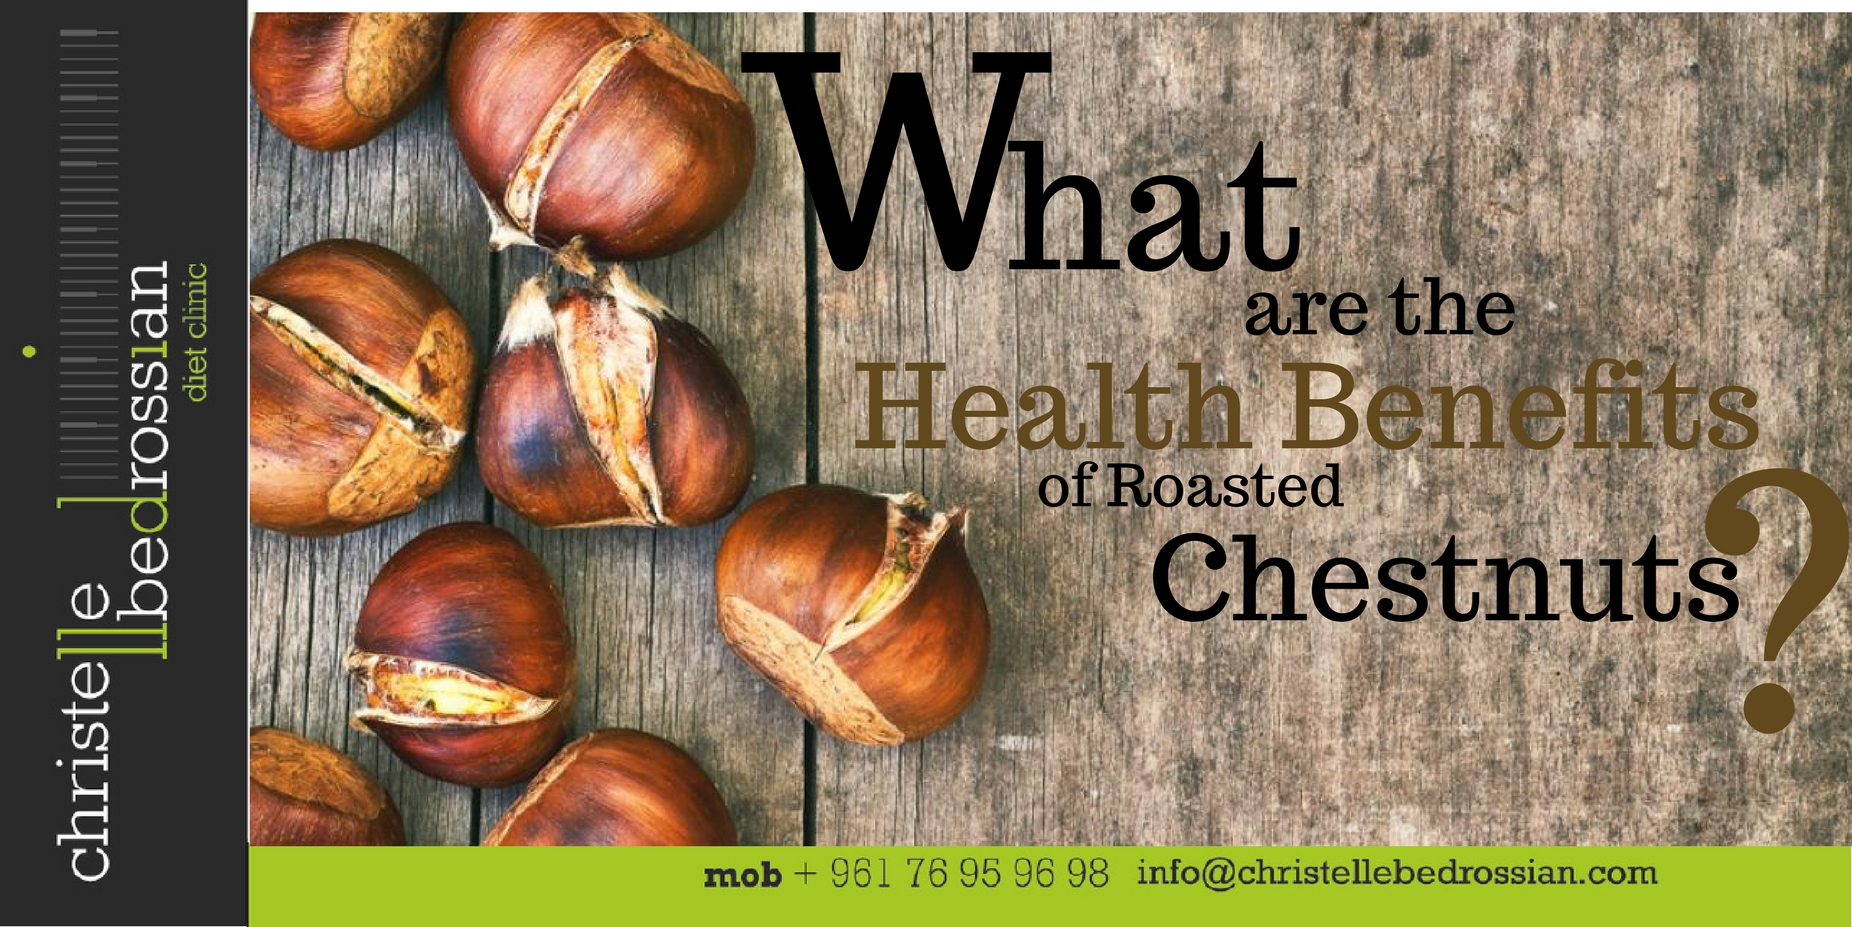 best dietitian lebanon, lebanon, diet, diet clinic, health benefits, chestnuts